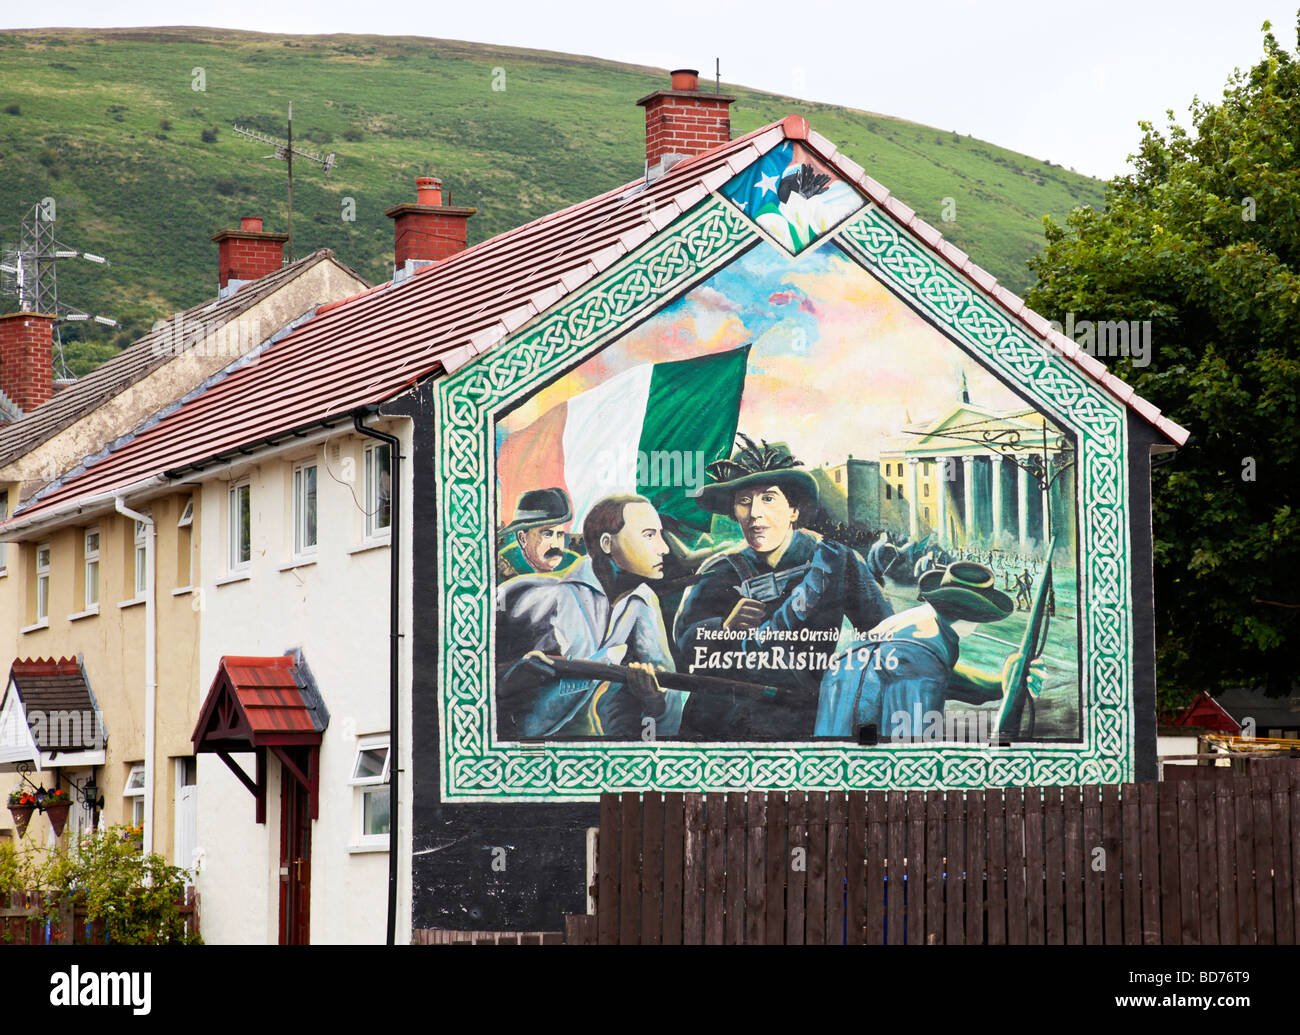 Mural depicting the 1916 Easter Uprising in Dublin, on the side of a house in the Republican area of West Belfast, - Stock Image